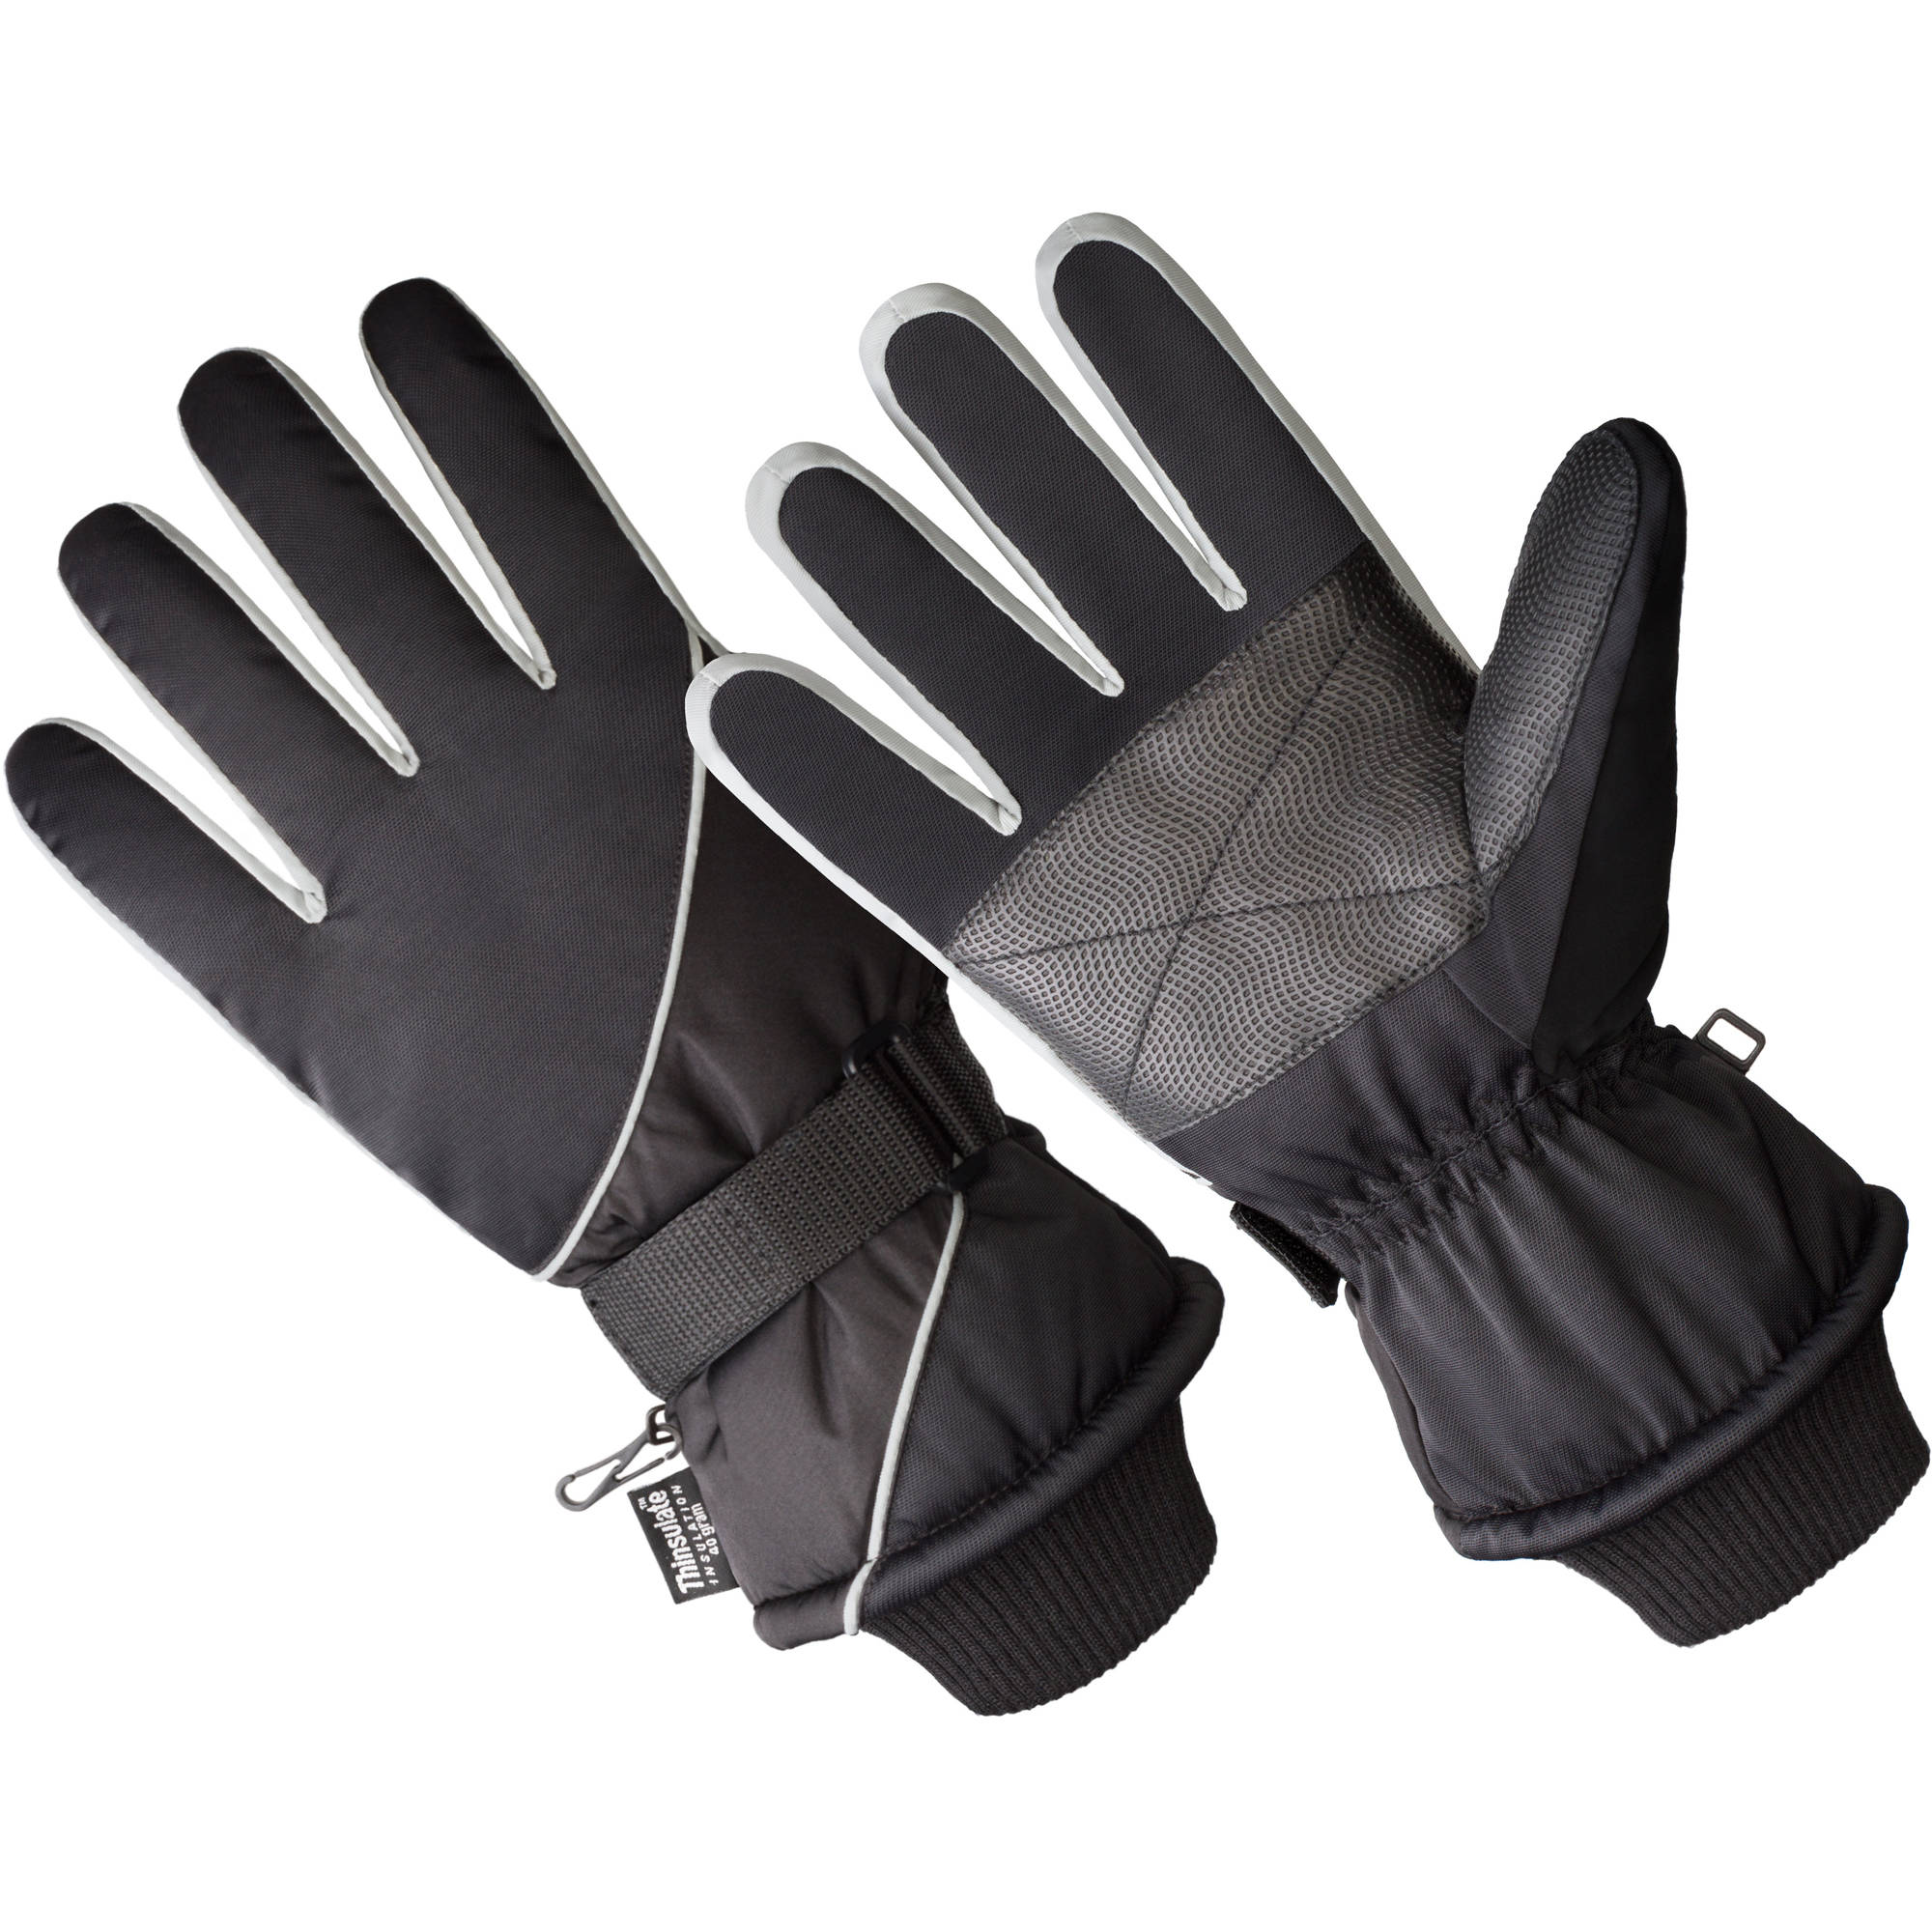 SK1012-OSFM, Men's Premium Ski Glove, 40 gm 3M Thinsulate Lined, Black/Grey (One Size Fits Most)